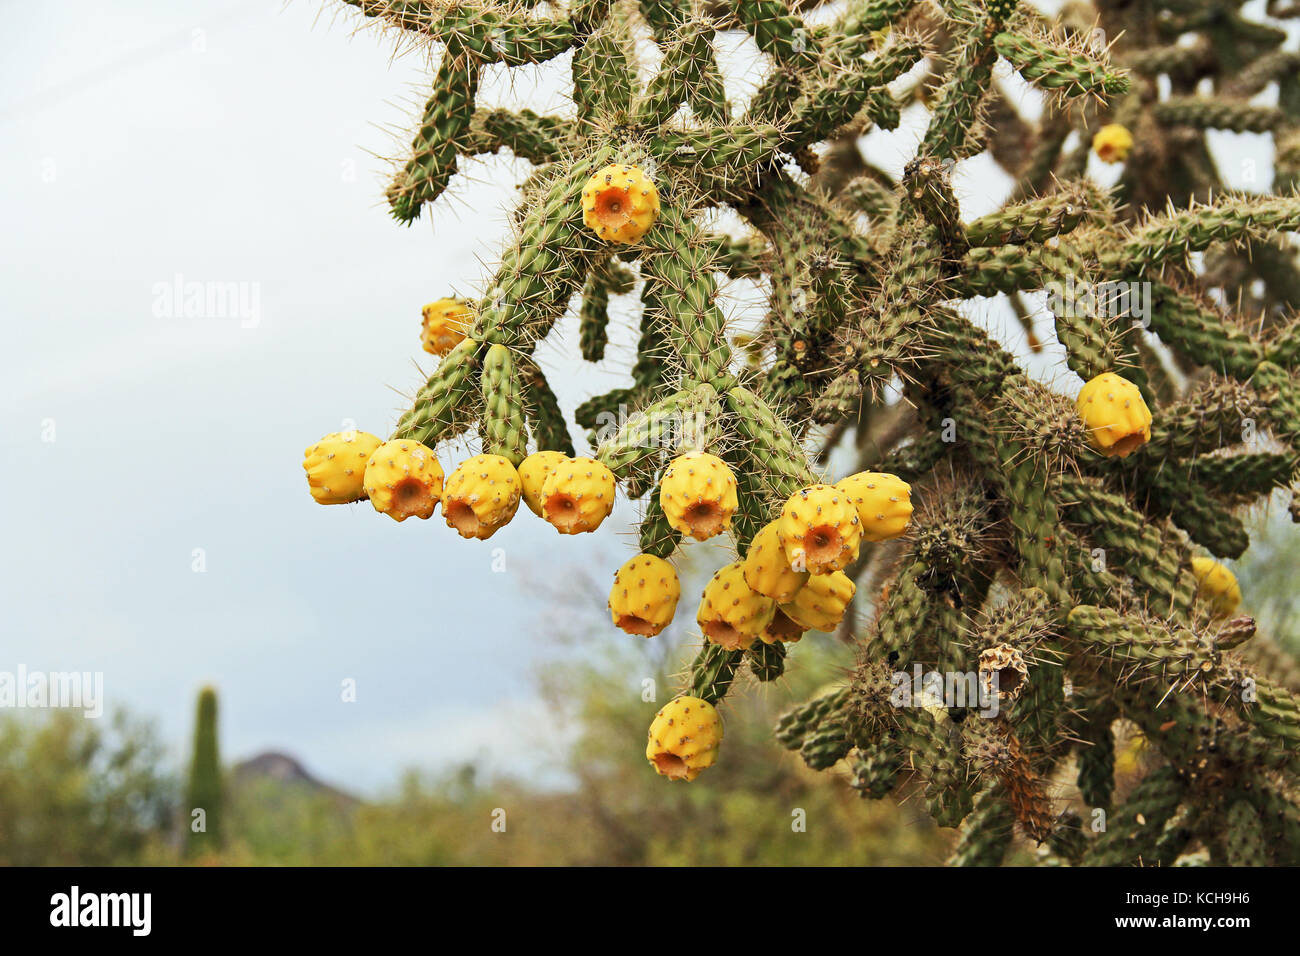 Yellow Fruit on a Cane Cholla in the Sonoran Desert - Stock Image